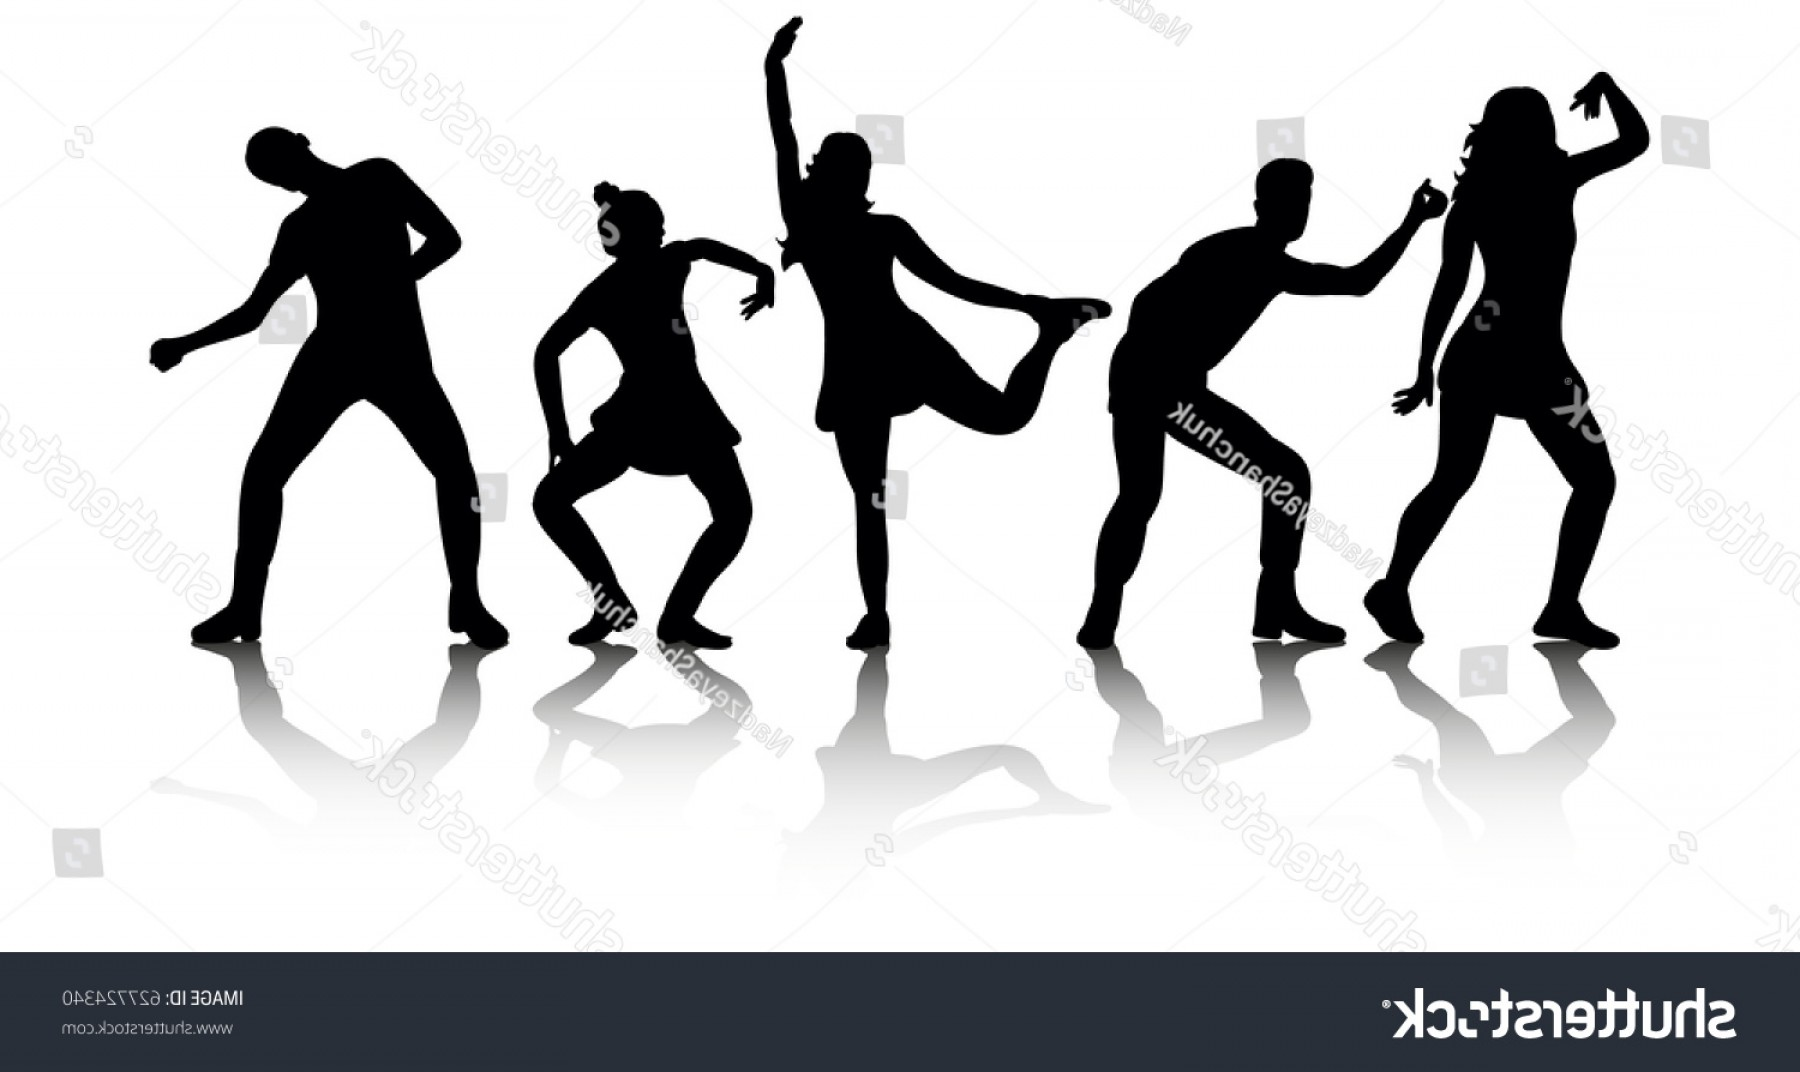 Sillouhette Vector Group: Illustration Vector Group Dancing People Silhouettes